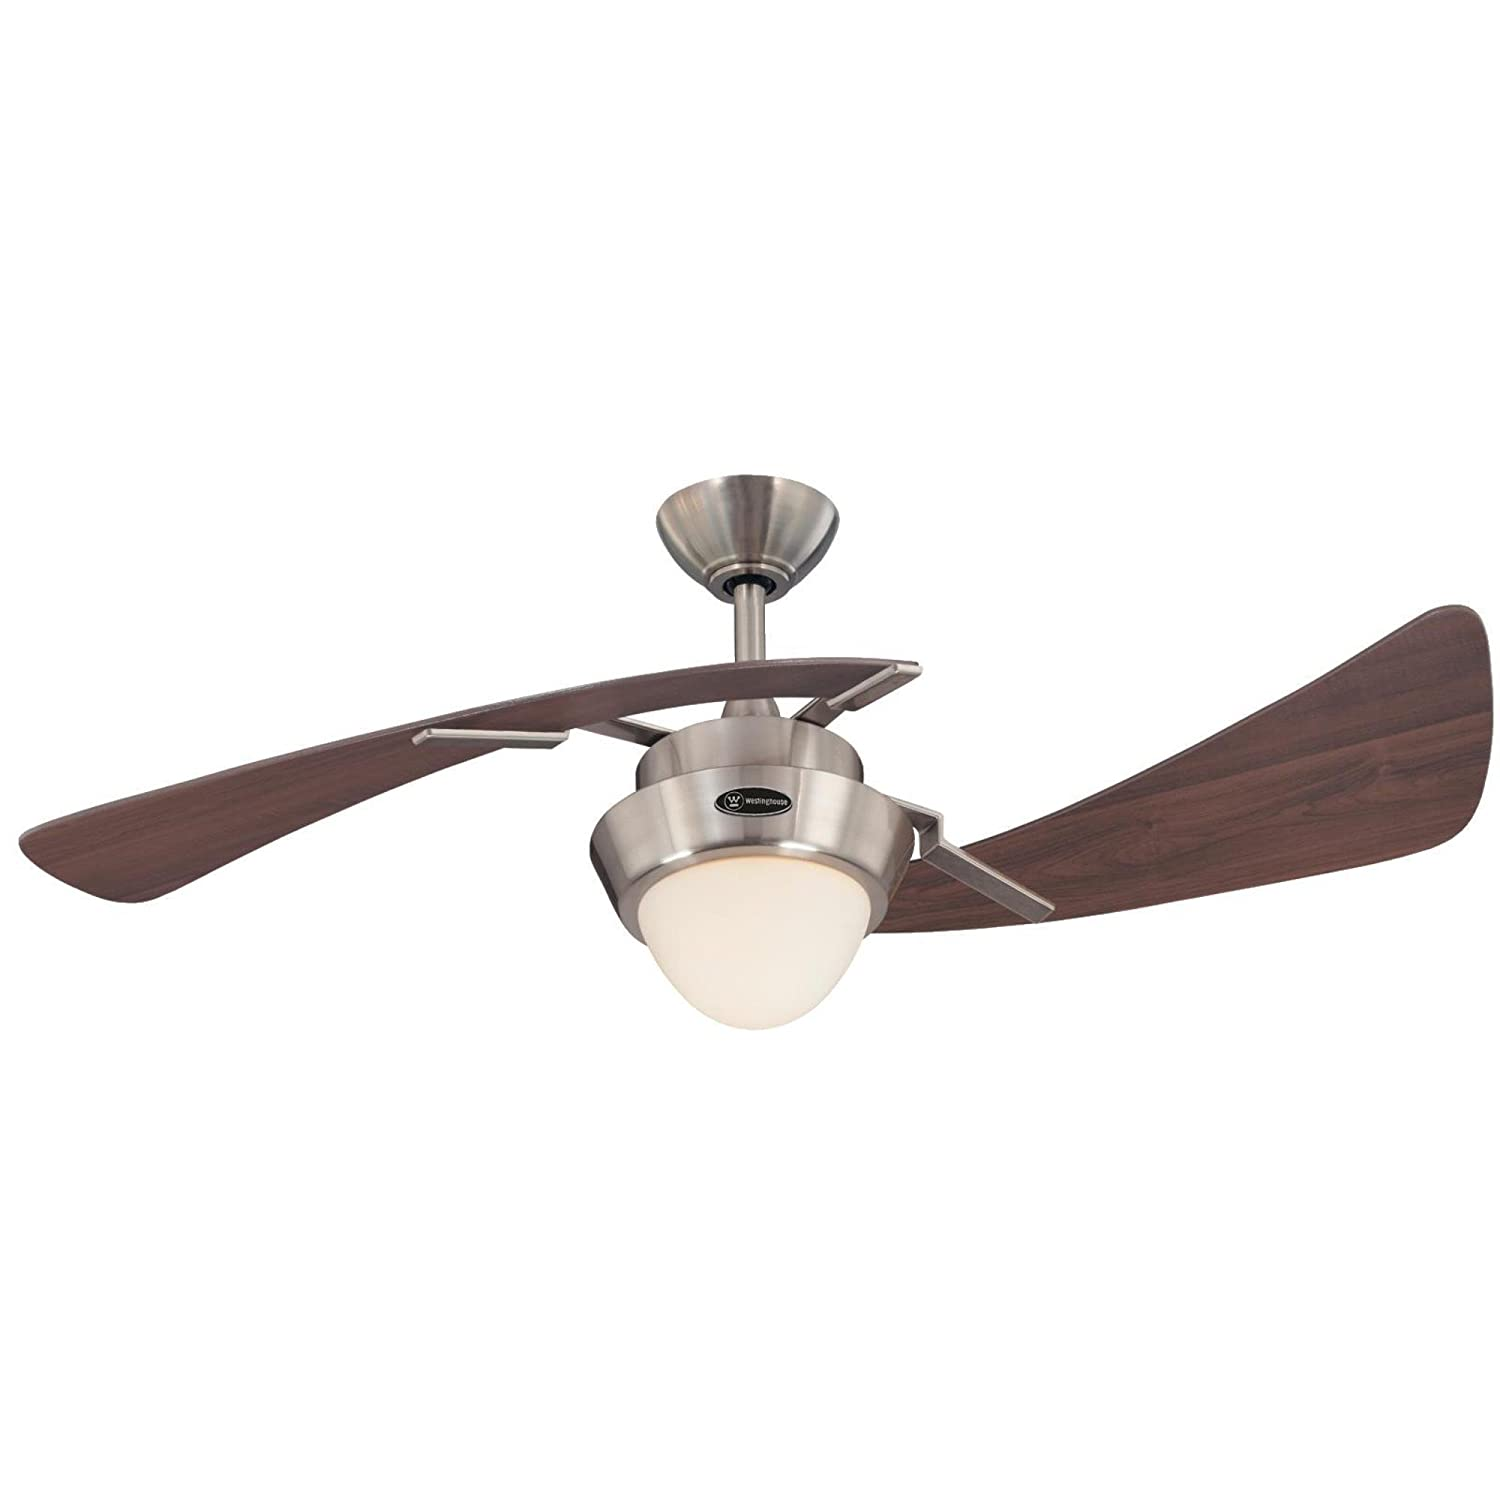 Westinghouse Lighting 7214100 Harmony 48-Inch Brushed Nickel Indoor Ceiling Fan, Light Kit with Opal Frosted Glass